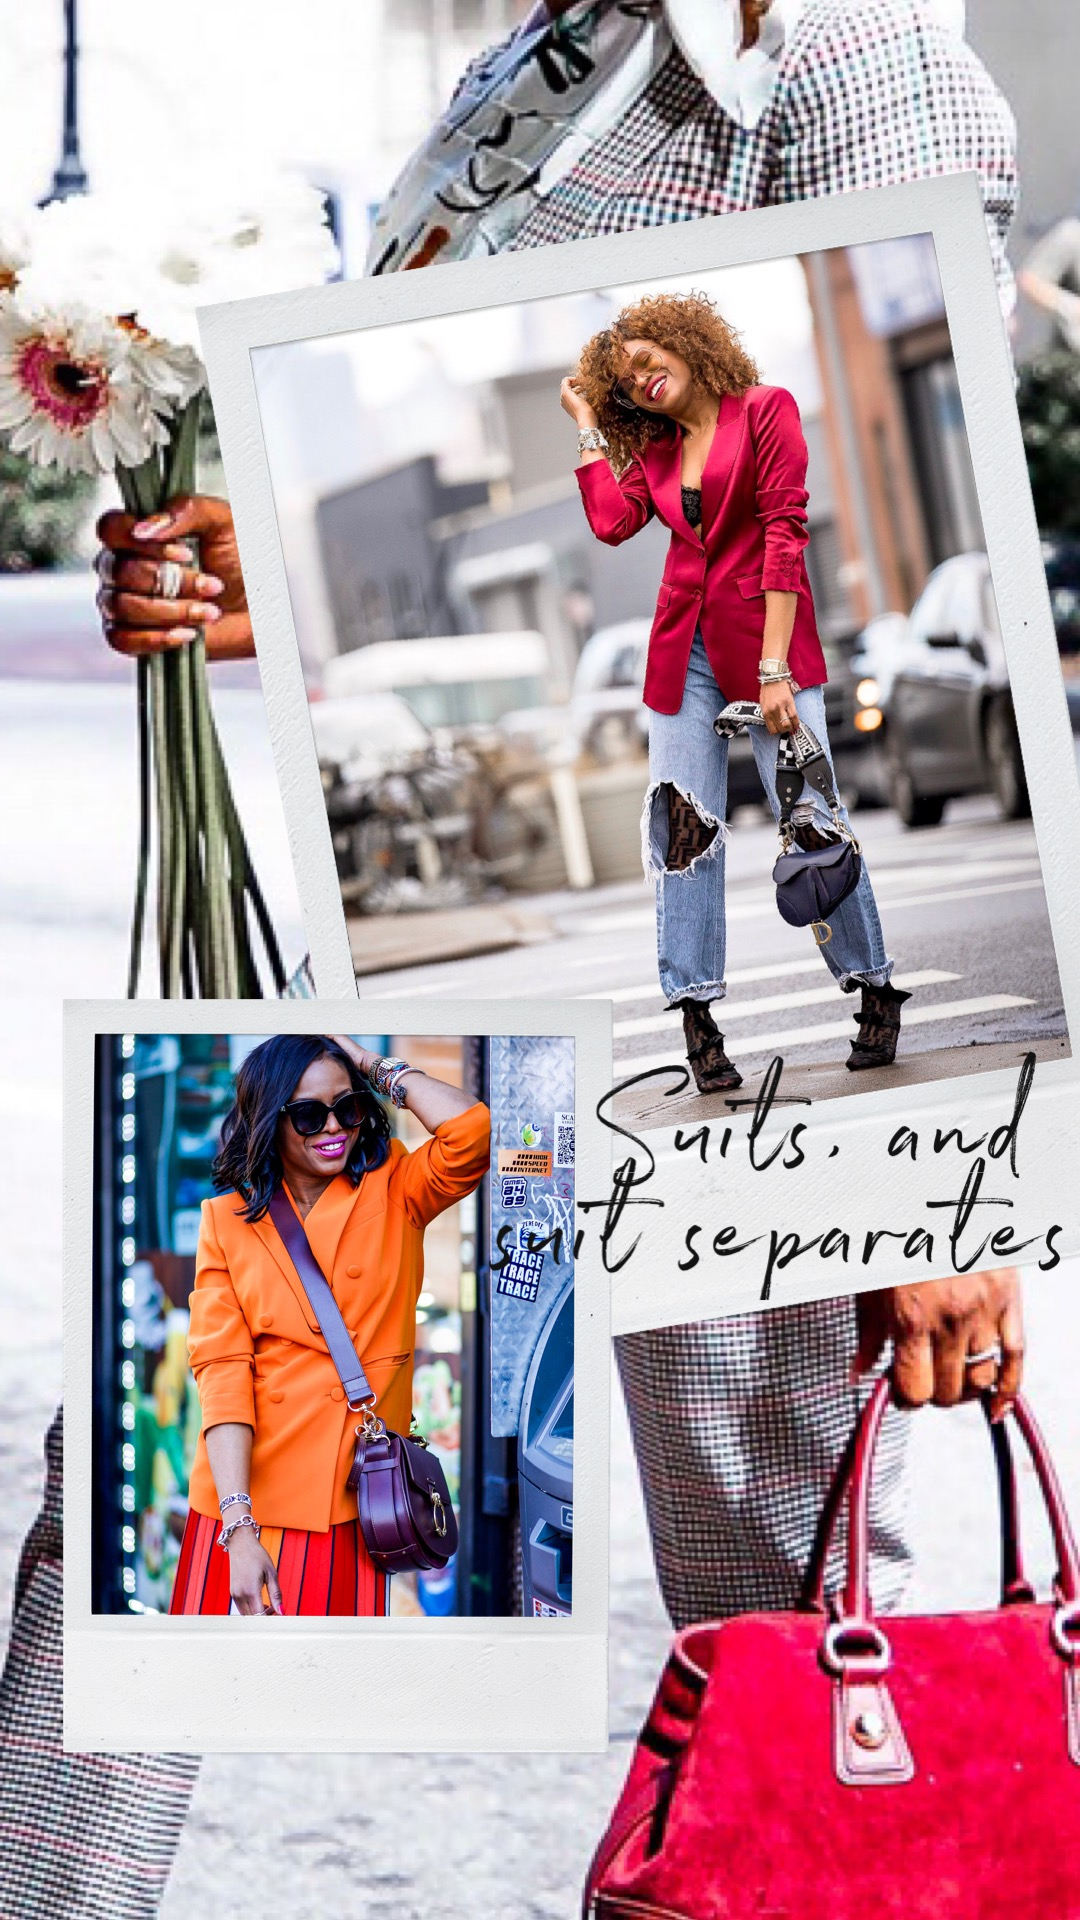 Atlanta blogger Monica Awe-Etuk tells you everything you need to know about the suit trend and how to style suit separates